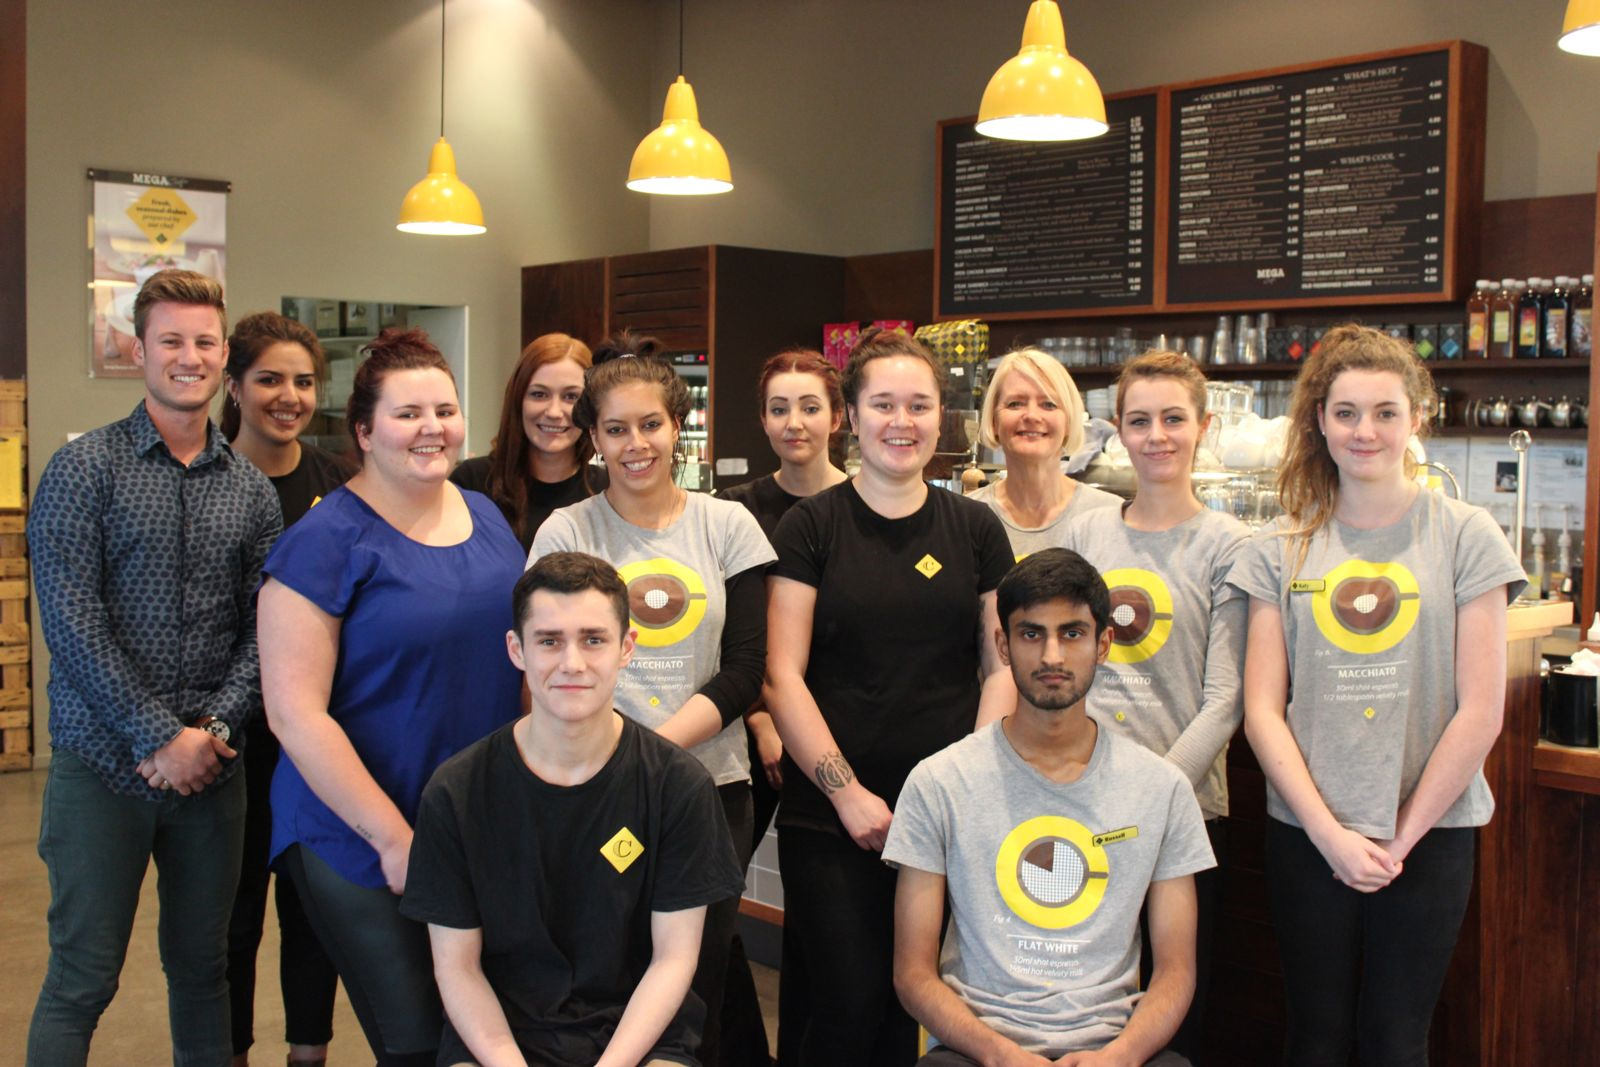 Korby Hall (left) with some of the family and team members who make up the award-winning team at Columbus Coffee in the Mitre 10 MEGA at Kapiti